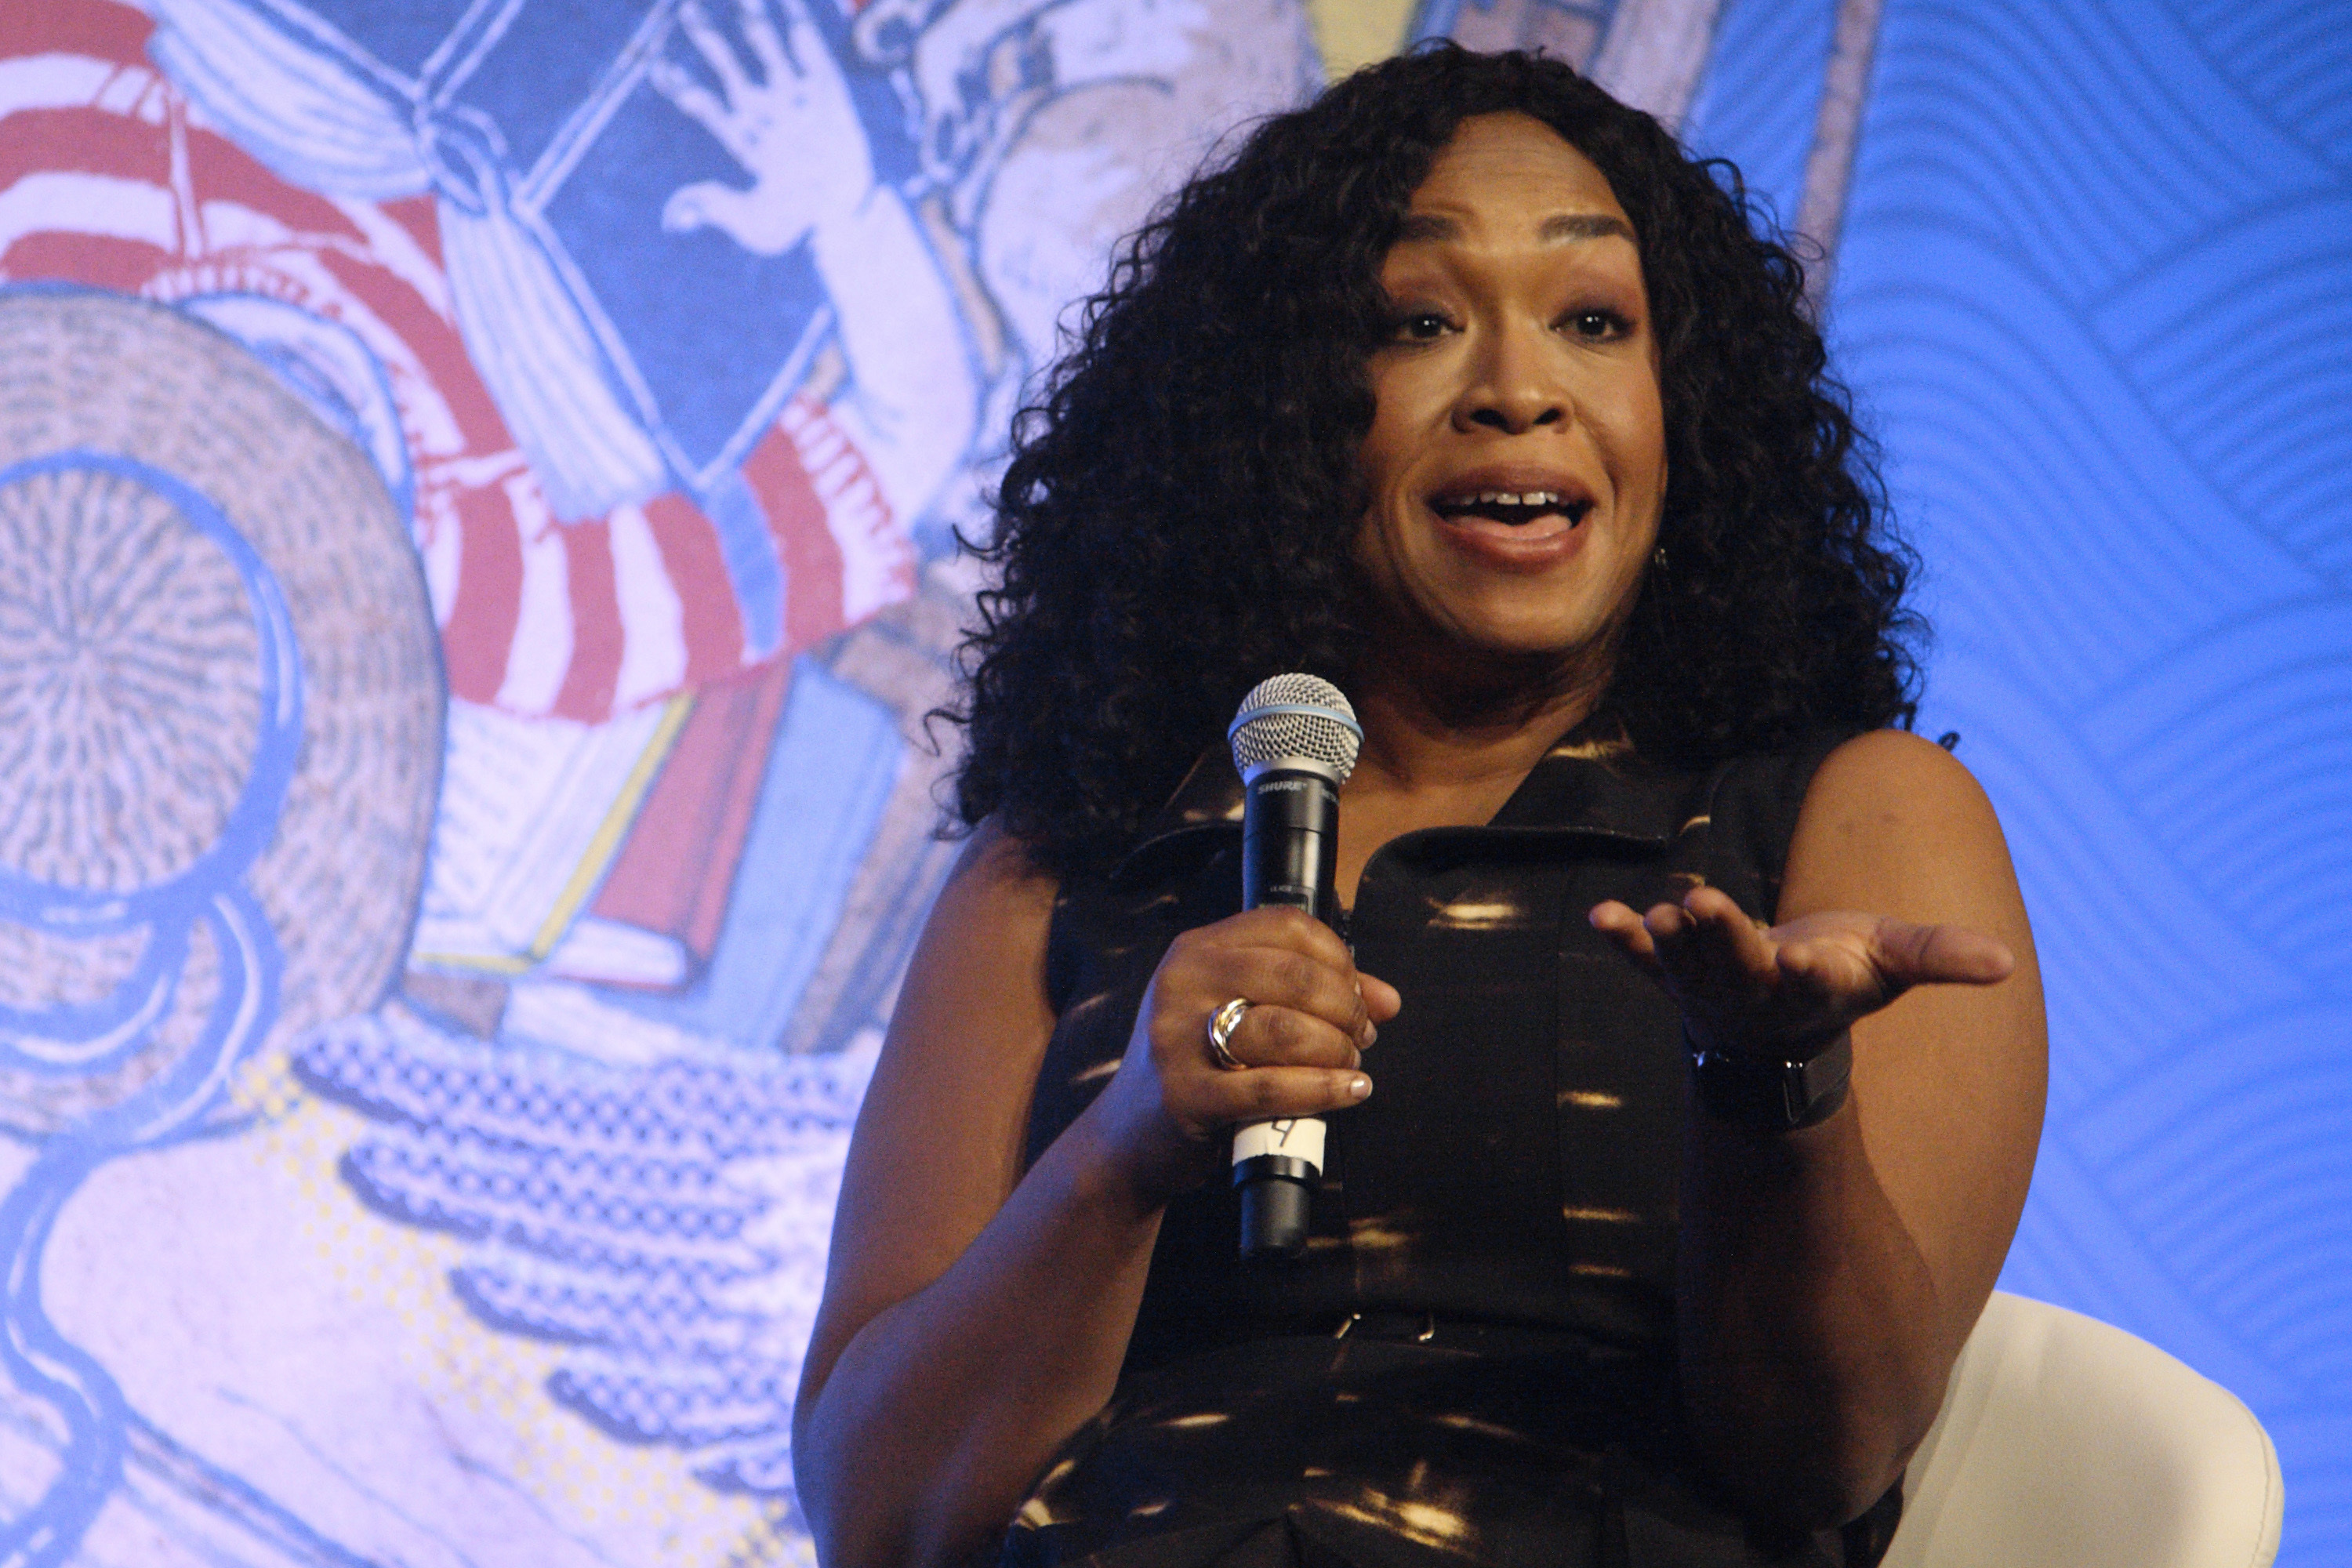 Shonda Rhimes, writer and television producer, will moderate a panel with Michelle Obama Tuesday in Center City.